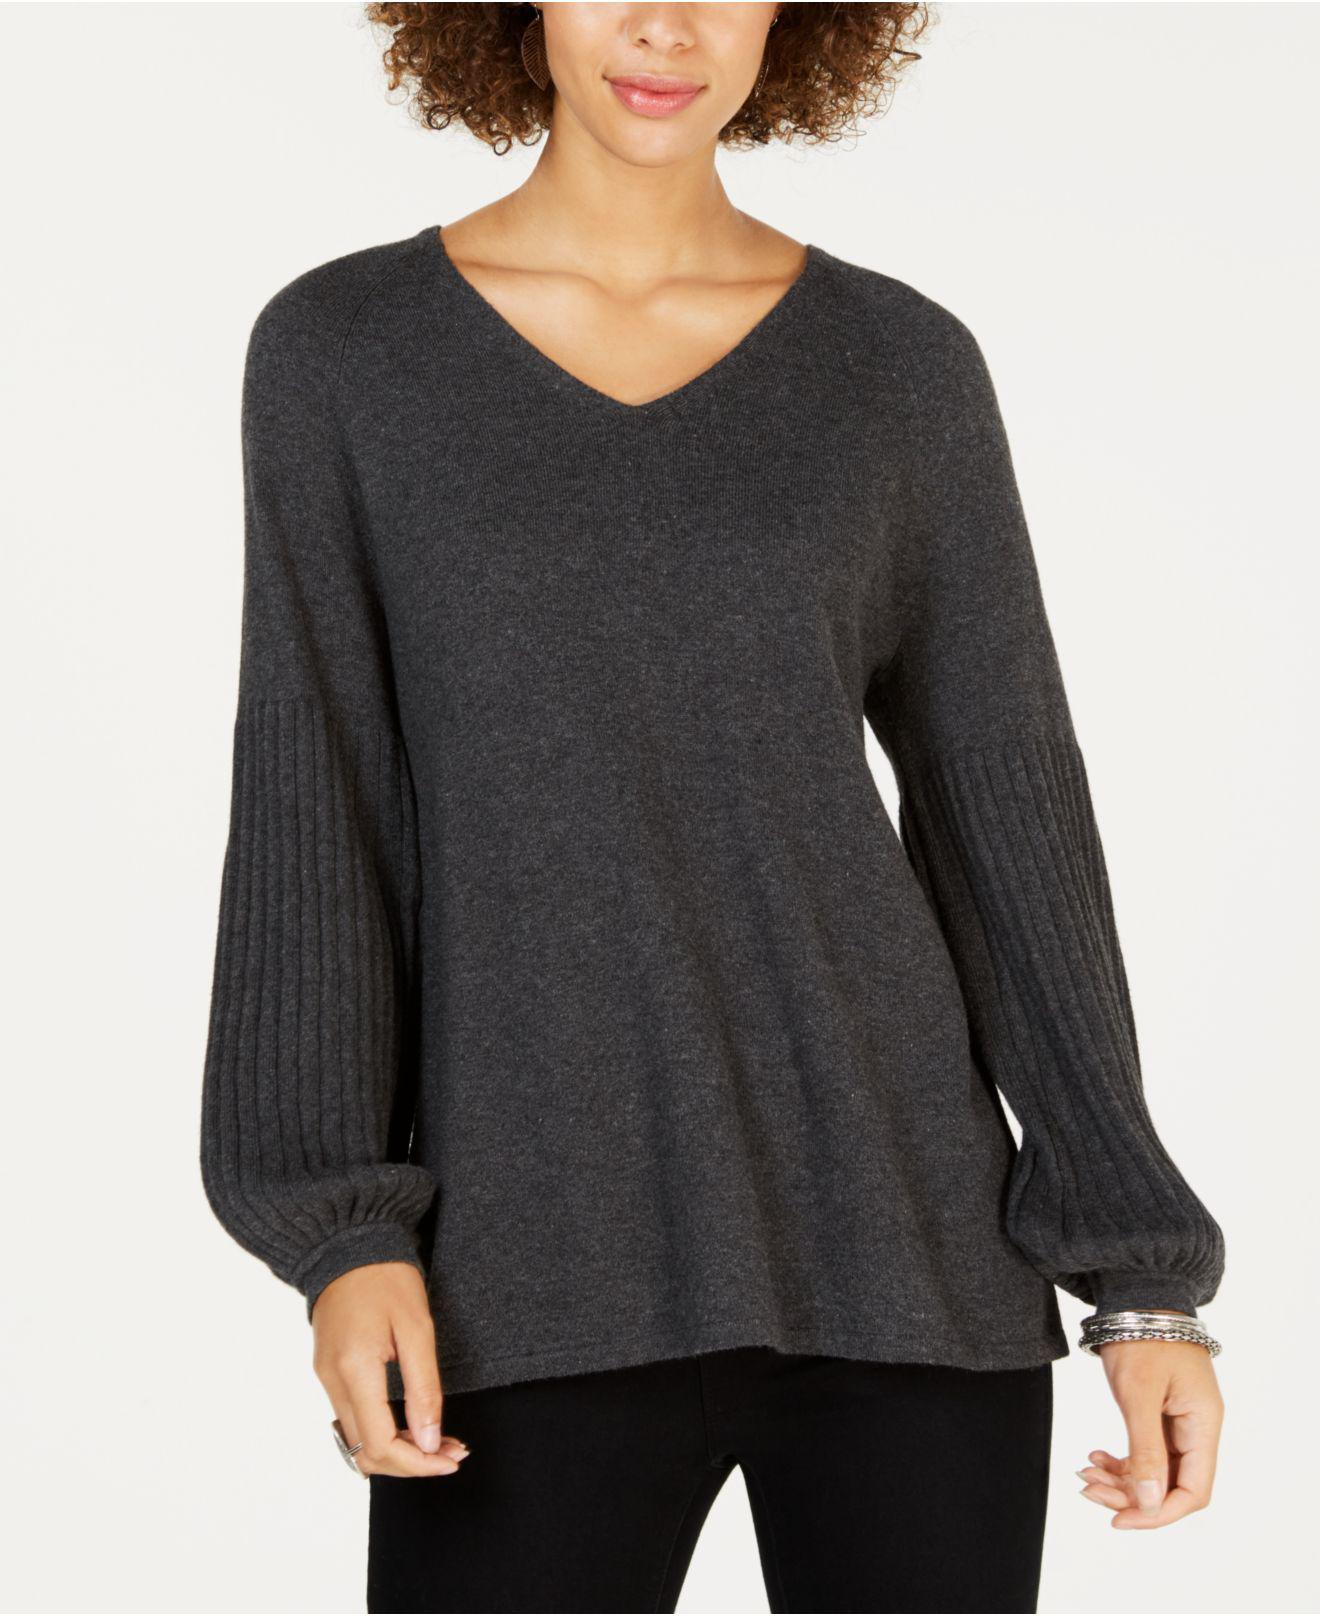 f529c4170a Style   Co. Women s Petite Bishop-sleeve Sweater ...